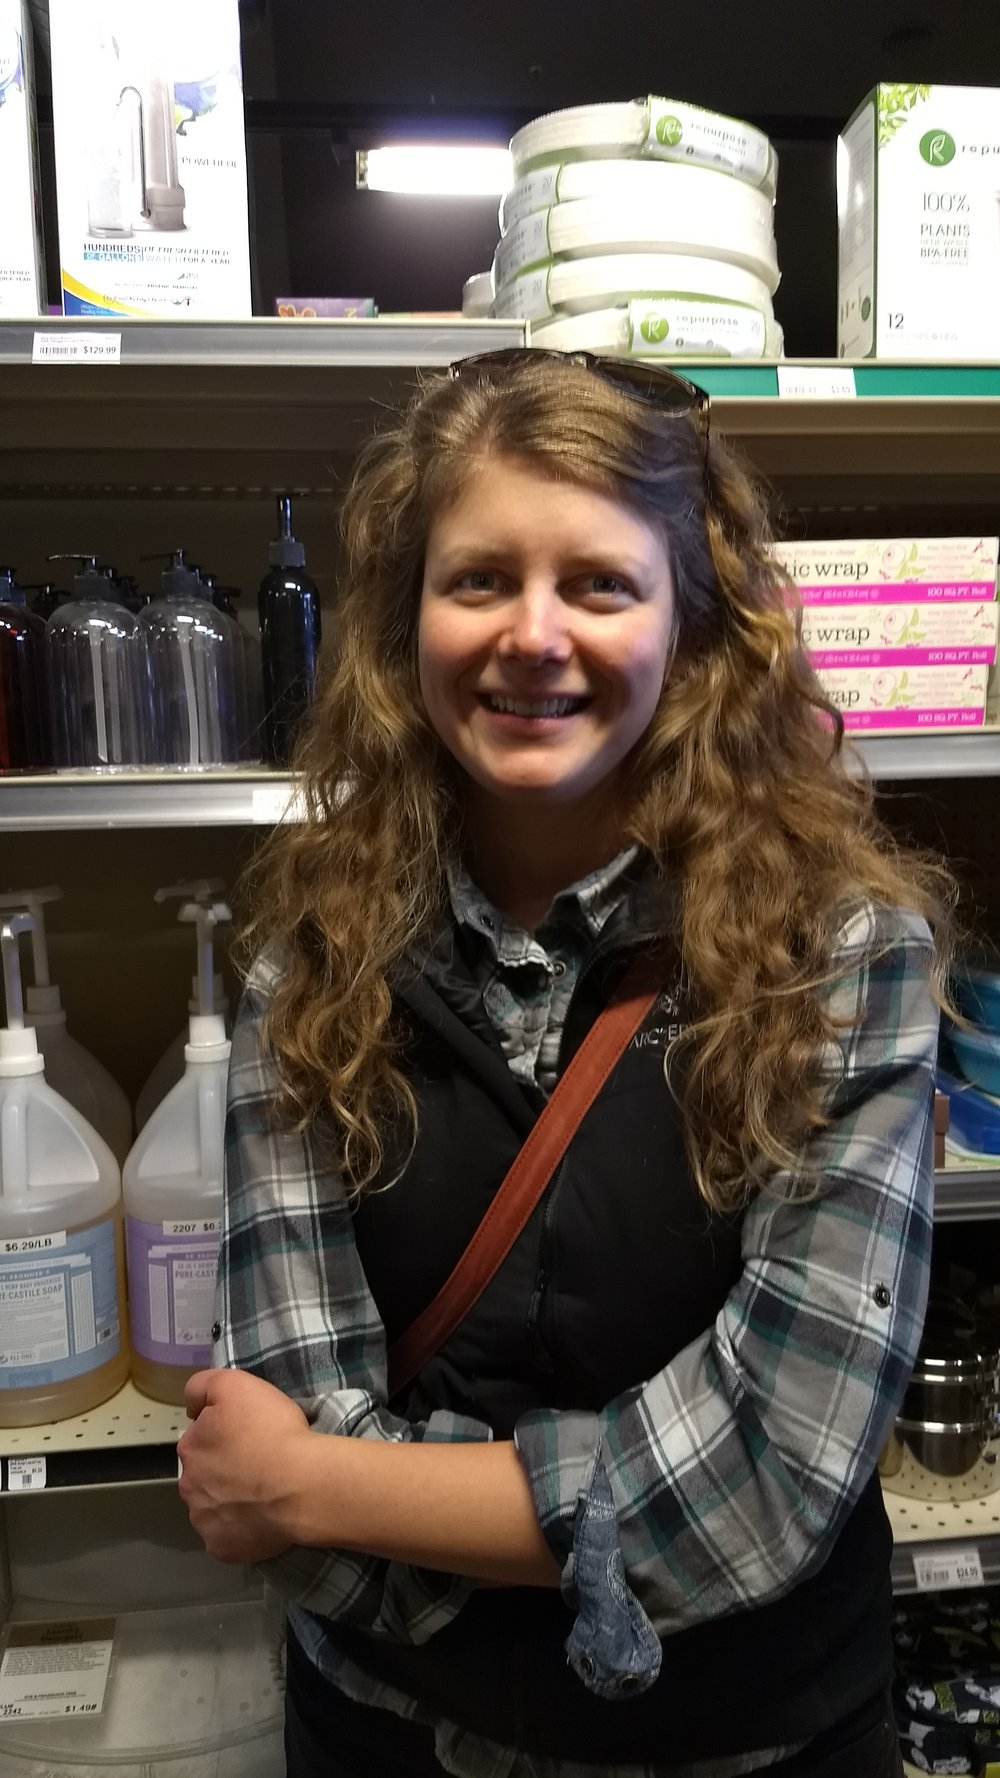 """I like a spicy chai tea in the morning."" Christine Plourde, St. Maries, Recreation Manager"